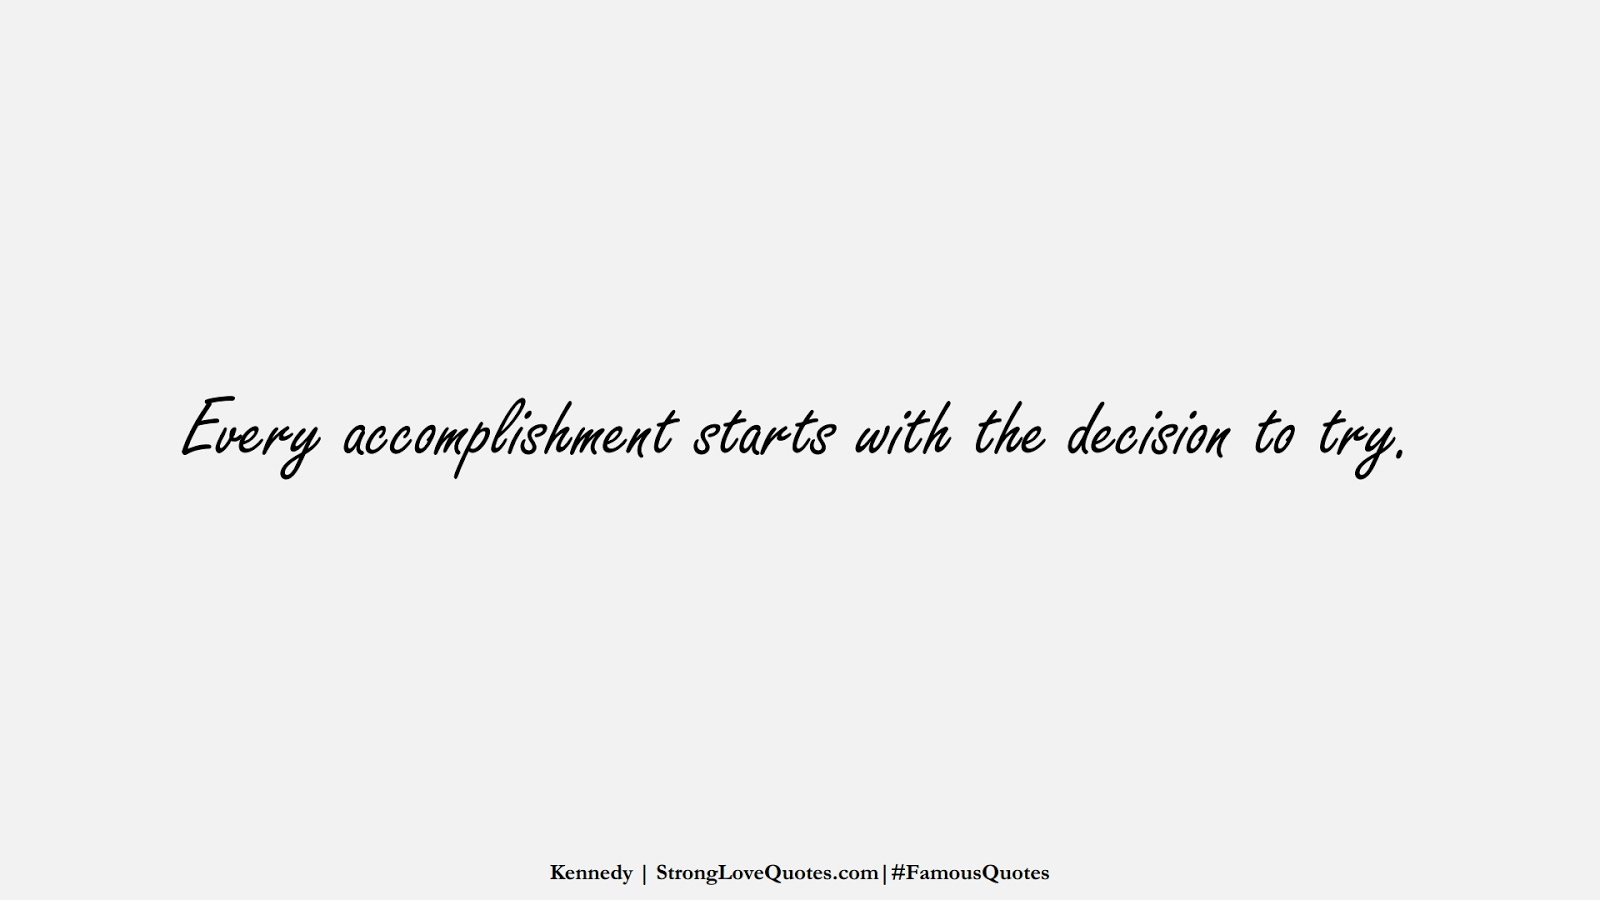 Every accomplishment starts with the decision to try. (Kennedy);  #FamousQuotes